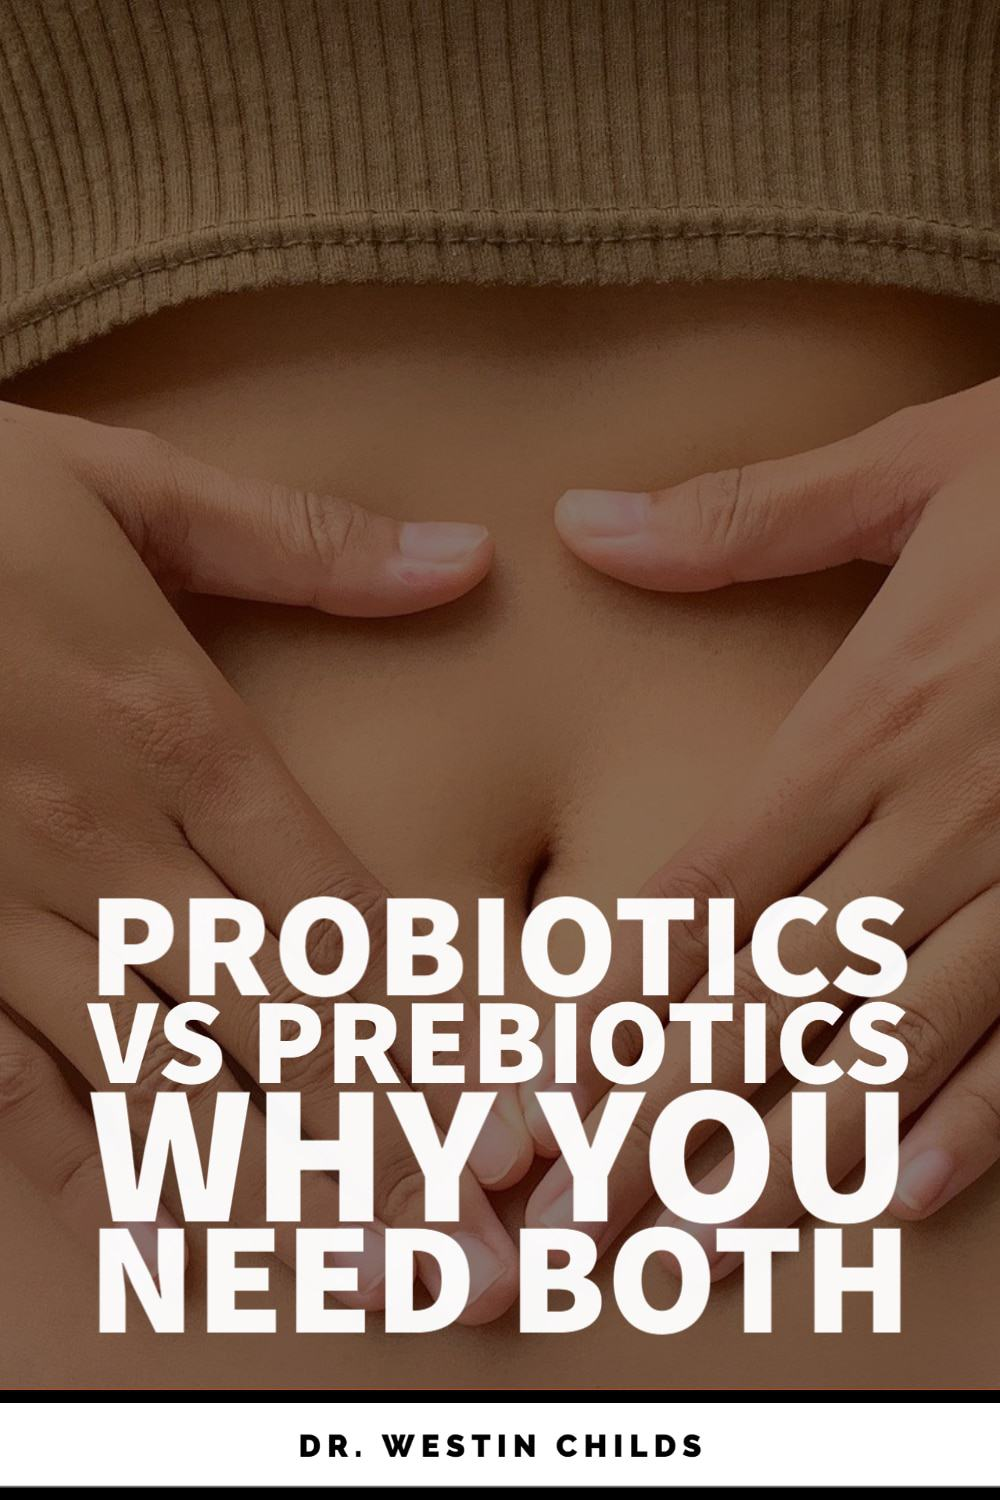 probiotics vs prebiotics - why you need both